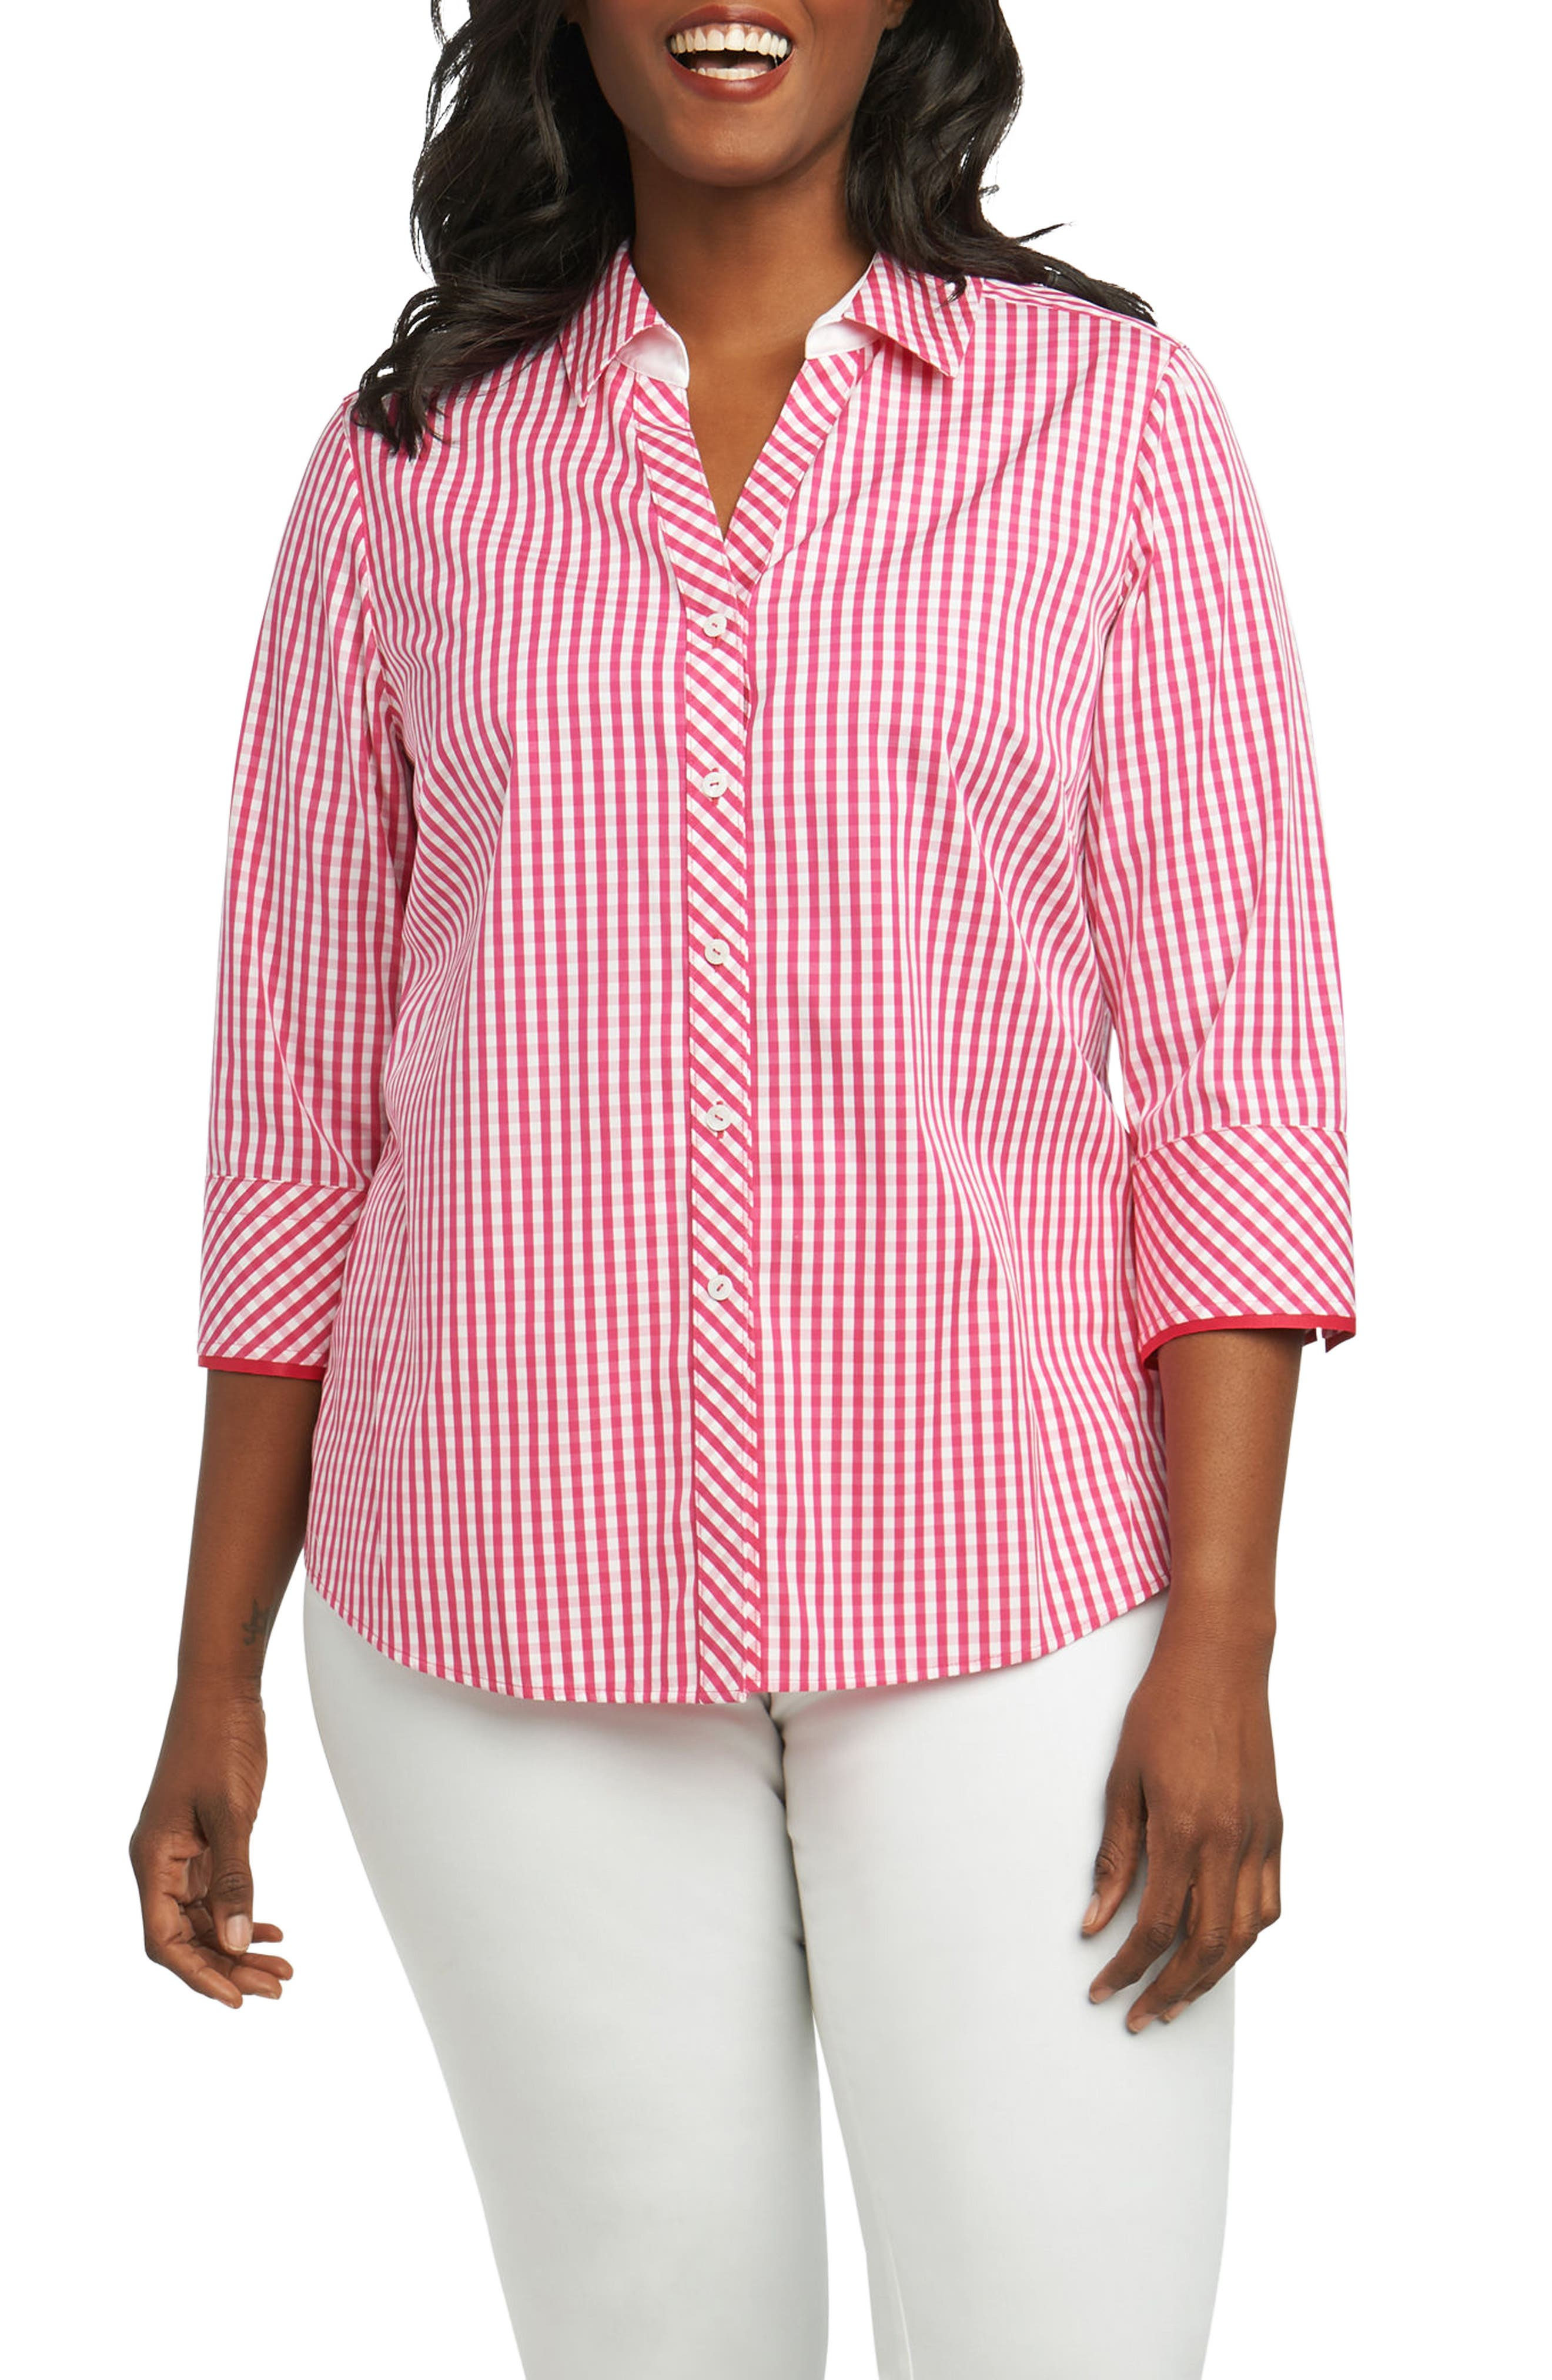 Foxcroft No Iron Blouses Nordstrom Rockwall Auction